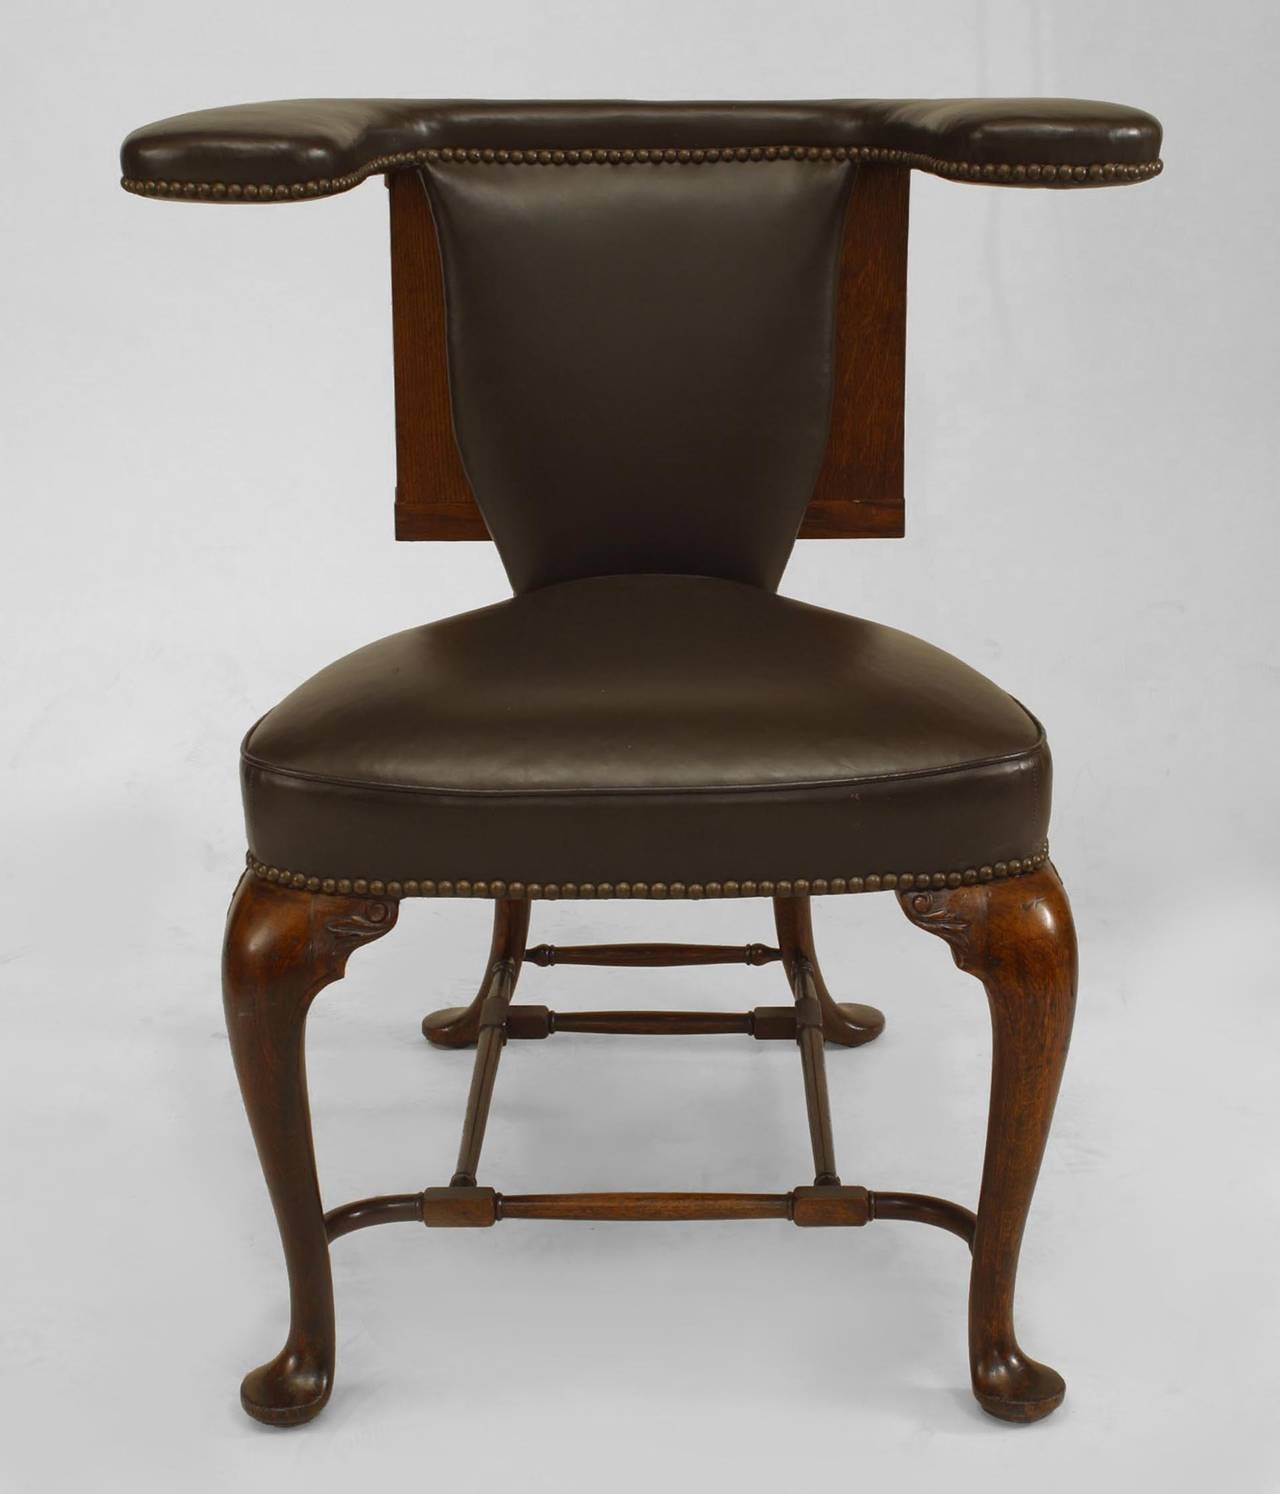 Reading Chairs 19th Century English Queen Anne Style Leather Upholstered